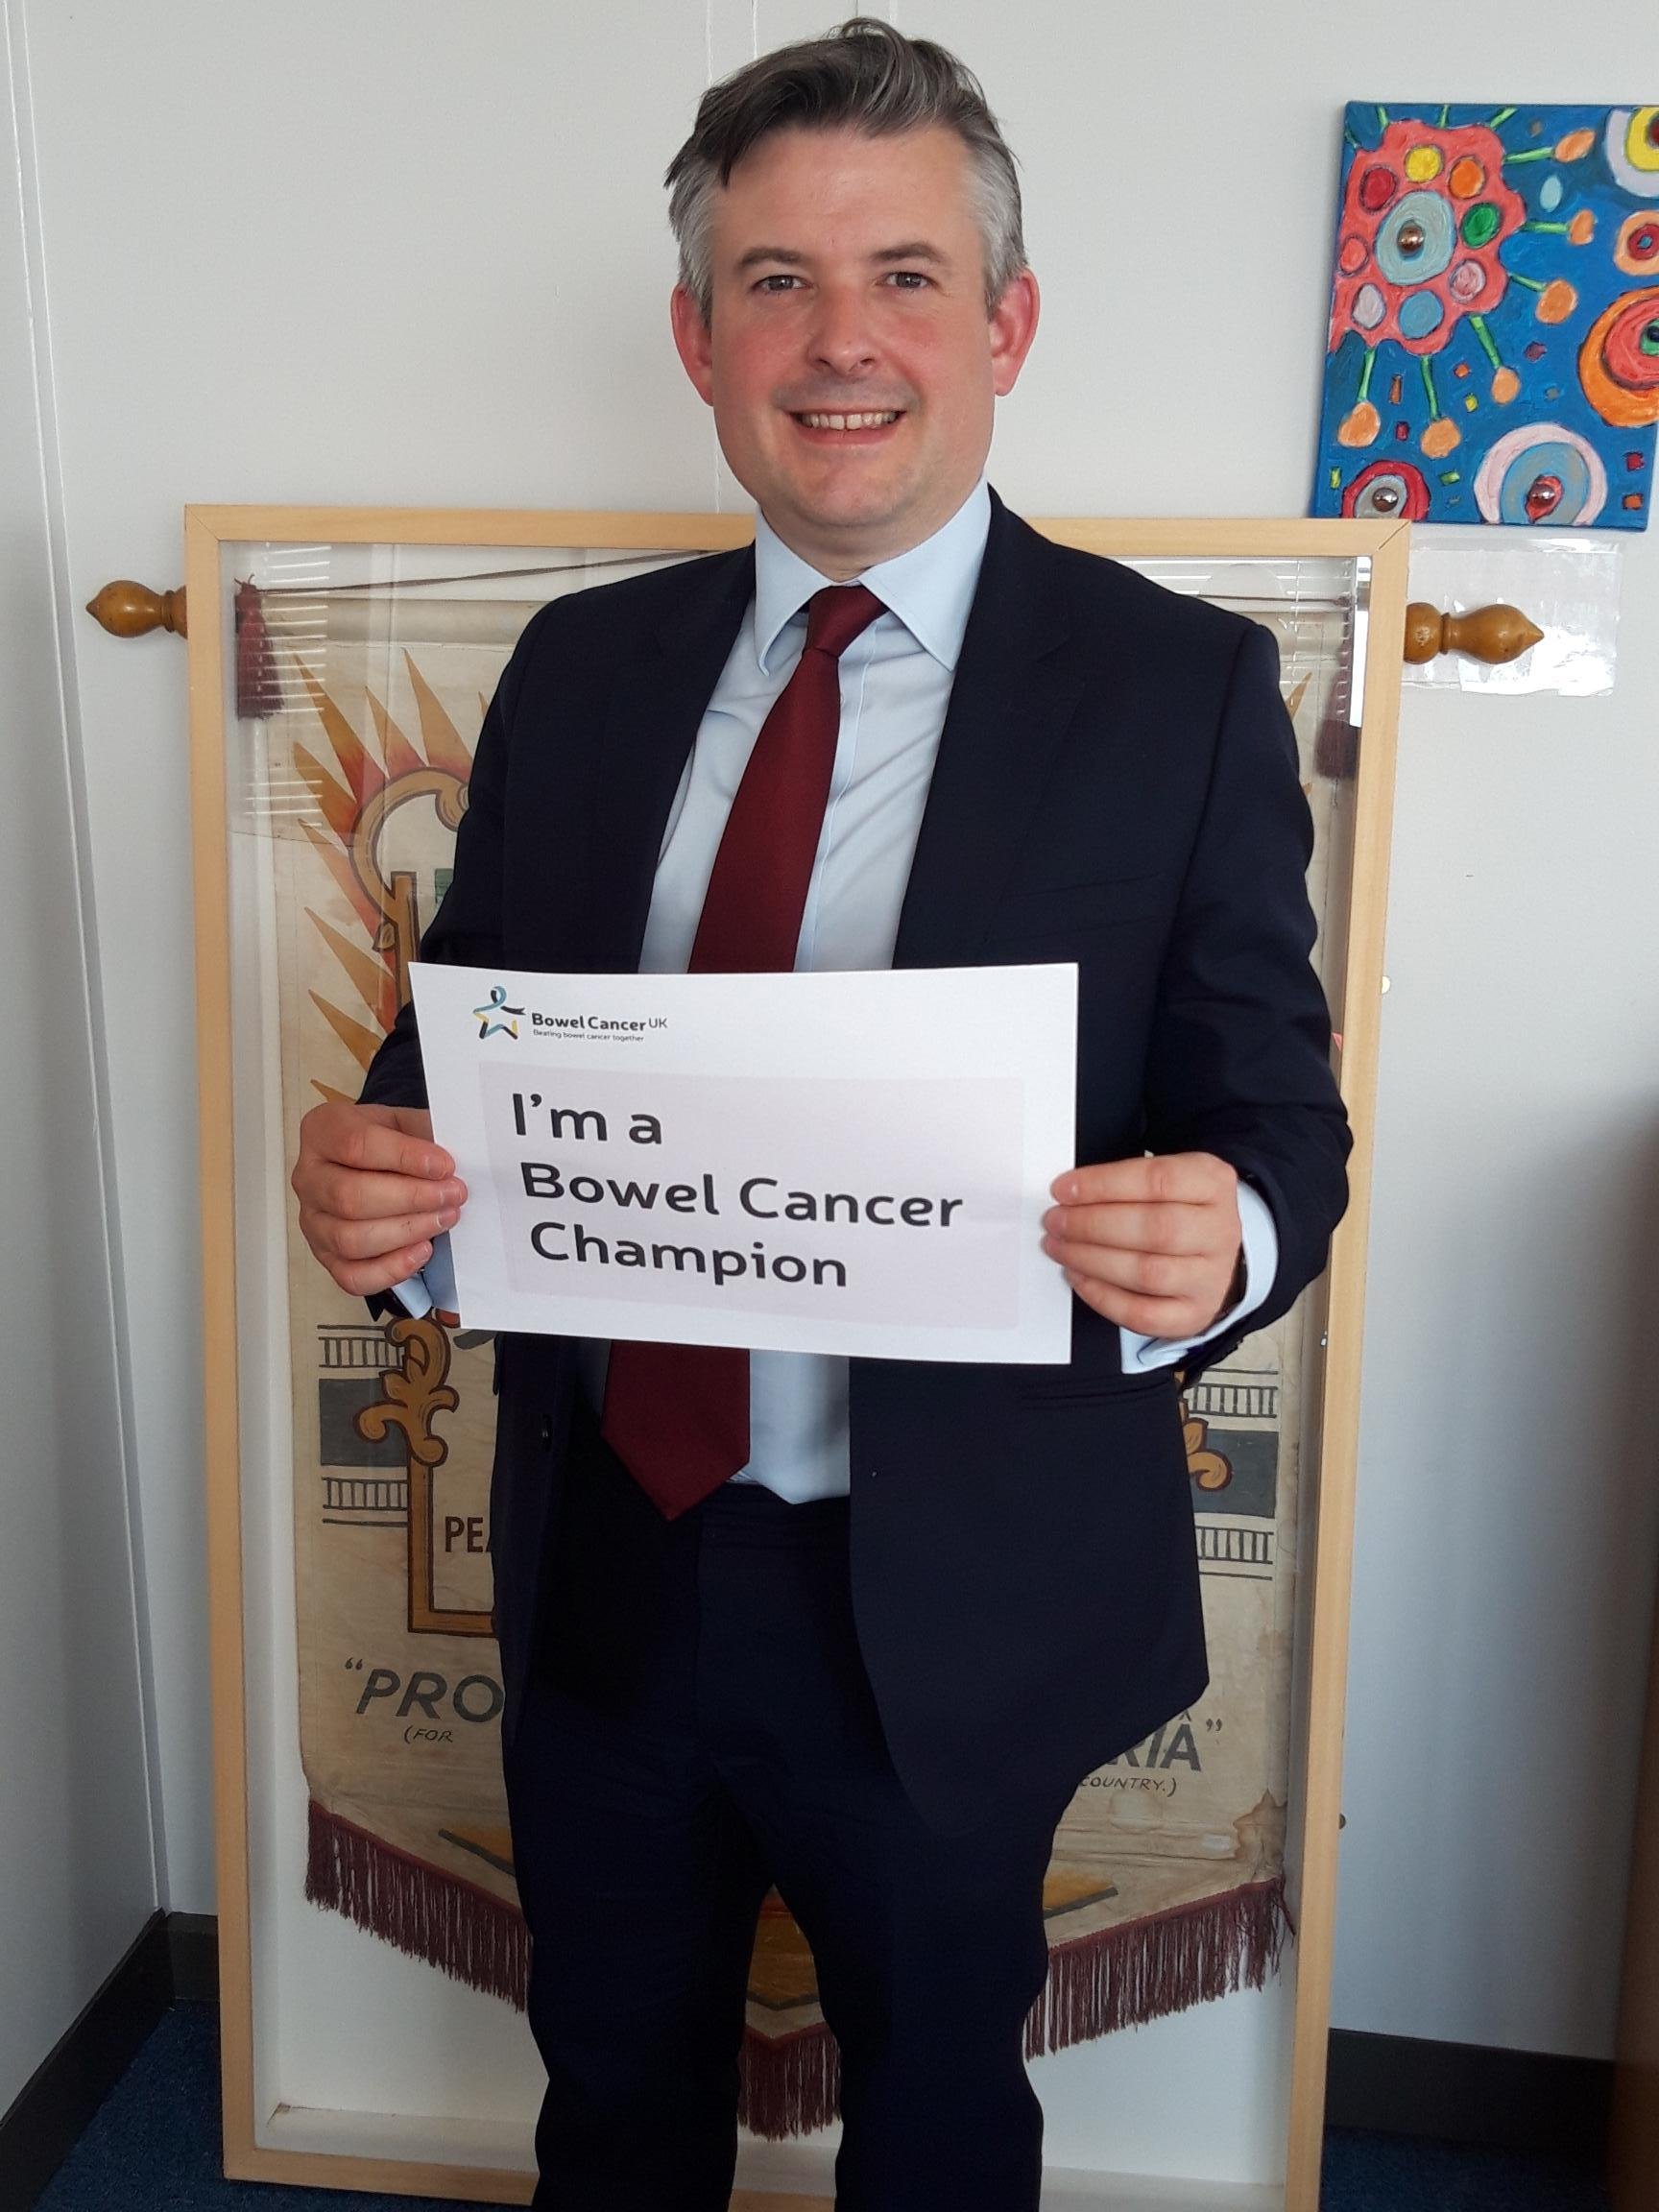 Jon has pledged to be a bowel cancer champion and lead change in Parliament for people affected by the disease - Friday May 24 2019